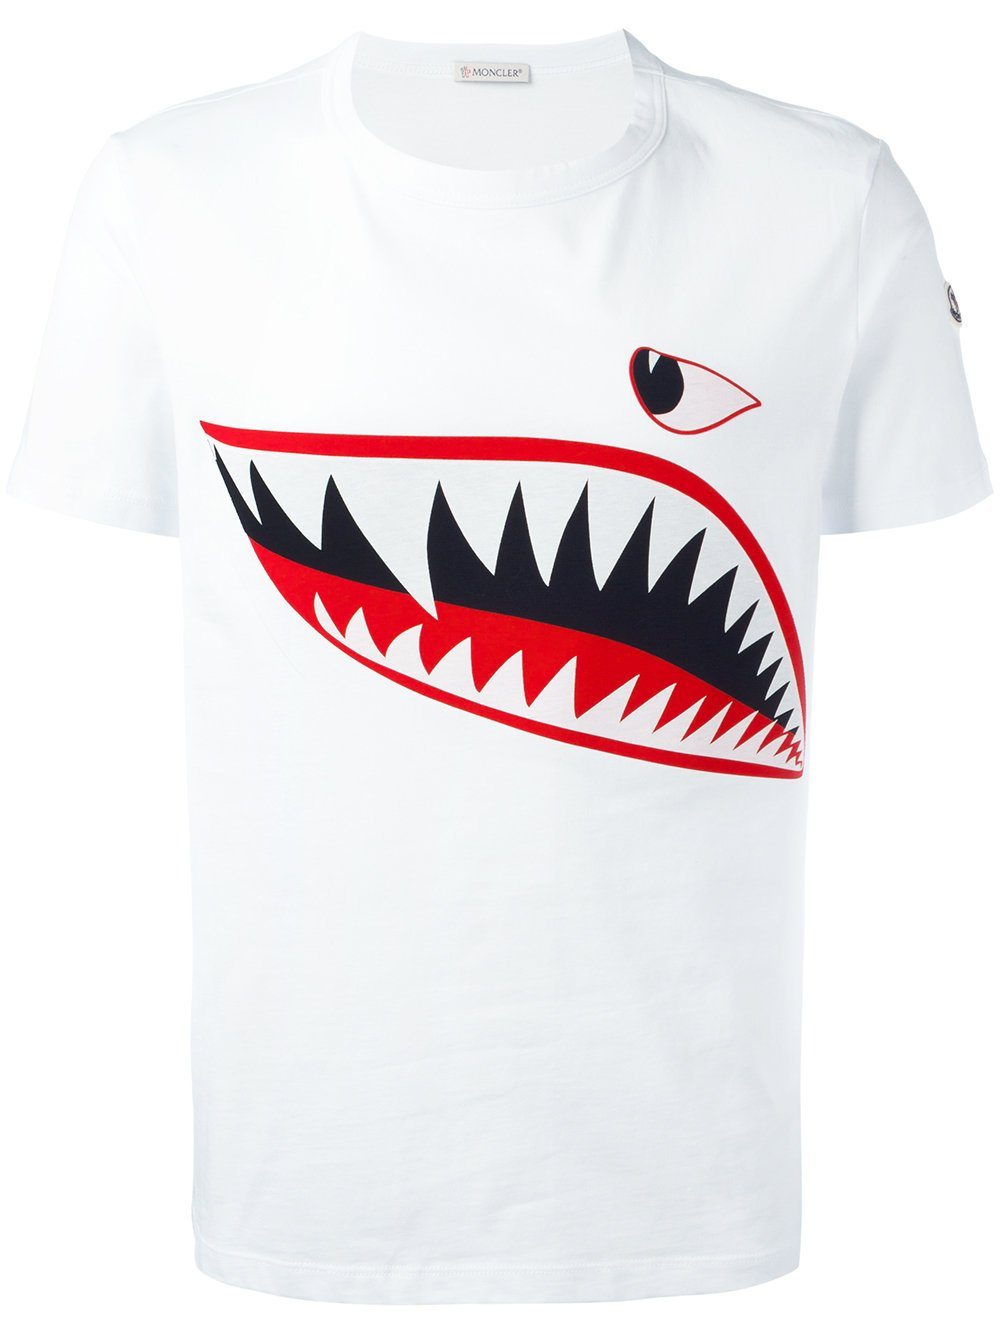 Moncler S New Shark Print T Shirts Are Fire Big Brand Boys